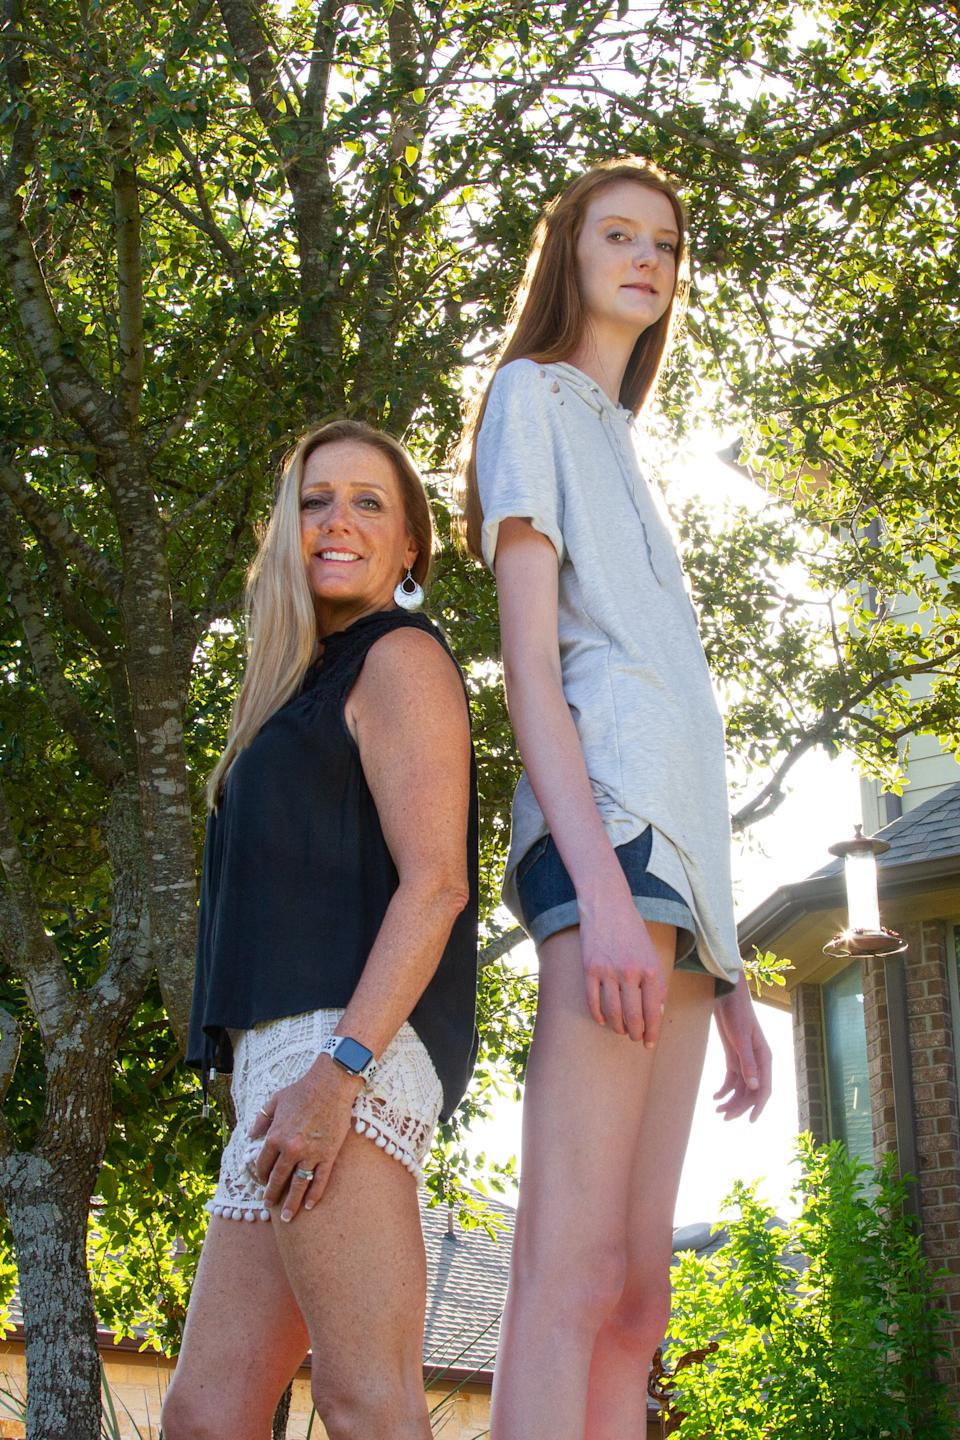 ***EXCLUSIVE VIDEO AVAILABLE*** AUSTIN, TX, USA - 11 AUGUST 2019: 16-year-old Maci Currin, whose 53 inch long legs are believed to be the world's longest, towers over her mother Trish as the pair stand back-to-back on 11 August, 2019, in Austin, Texas.A TOWERING teenager from Texas is about to strut her way into the record books as the proud owner of the world's longest legs. Aged only 16, Maci Currin, from Austin, Texas, has legs measuring an incredible 53 inches - smashing the previous record of 52.2 inches held by Ekaterina Lisina, of Russia. The 6ft 9in aspiring model was only 19 inches when born, but a series of growth spurts meant she rocketed to 5ft 7in by the time she was nine years old. Maci also has an inseam of 43 inches and has to stoop to avoid banging her head when walking through doors, but says she is proud of her lengthy limbs despite the added attention they bring. PHOTOGRAPH BY: Bradley Beesley / Barcroft Media (Photo credit should read Bradley Beesley / Barcroft Media / Barcroft Media via Getty Images)